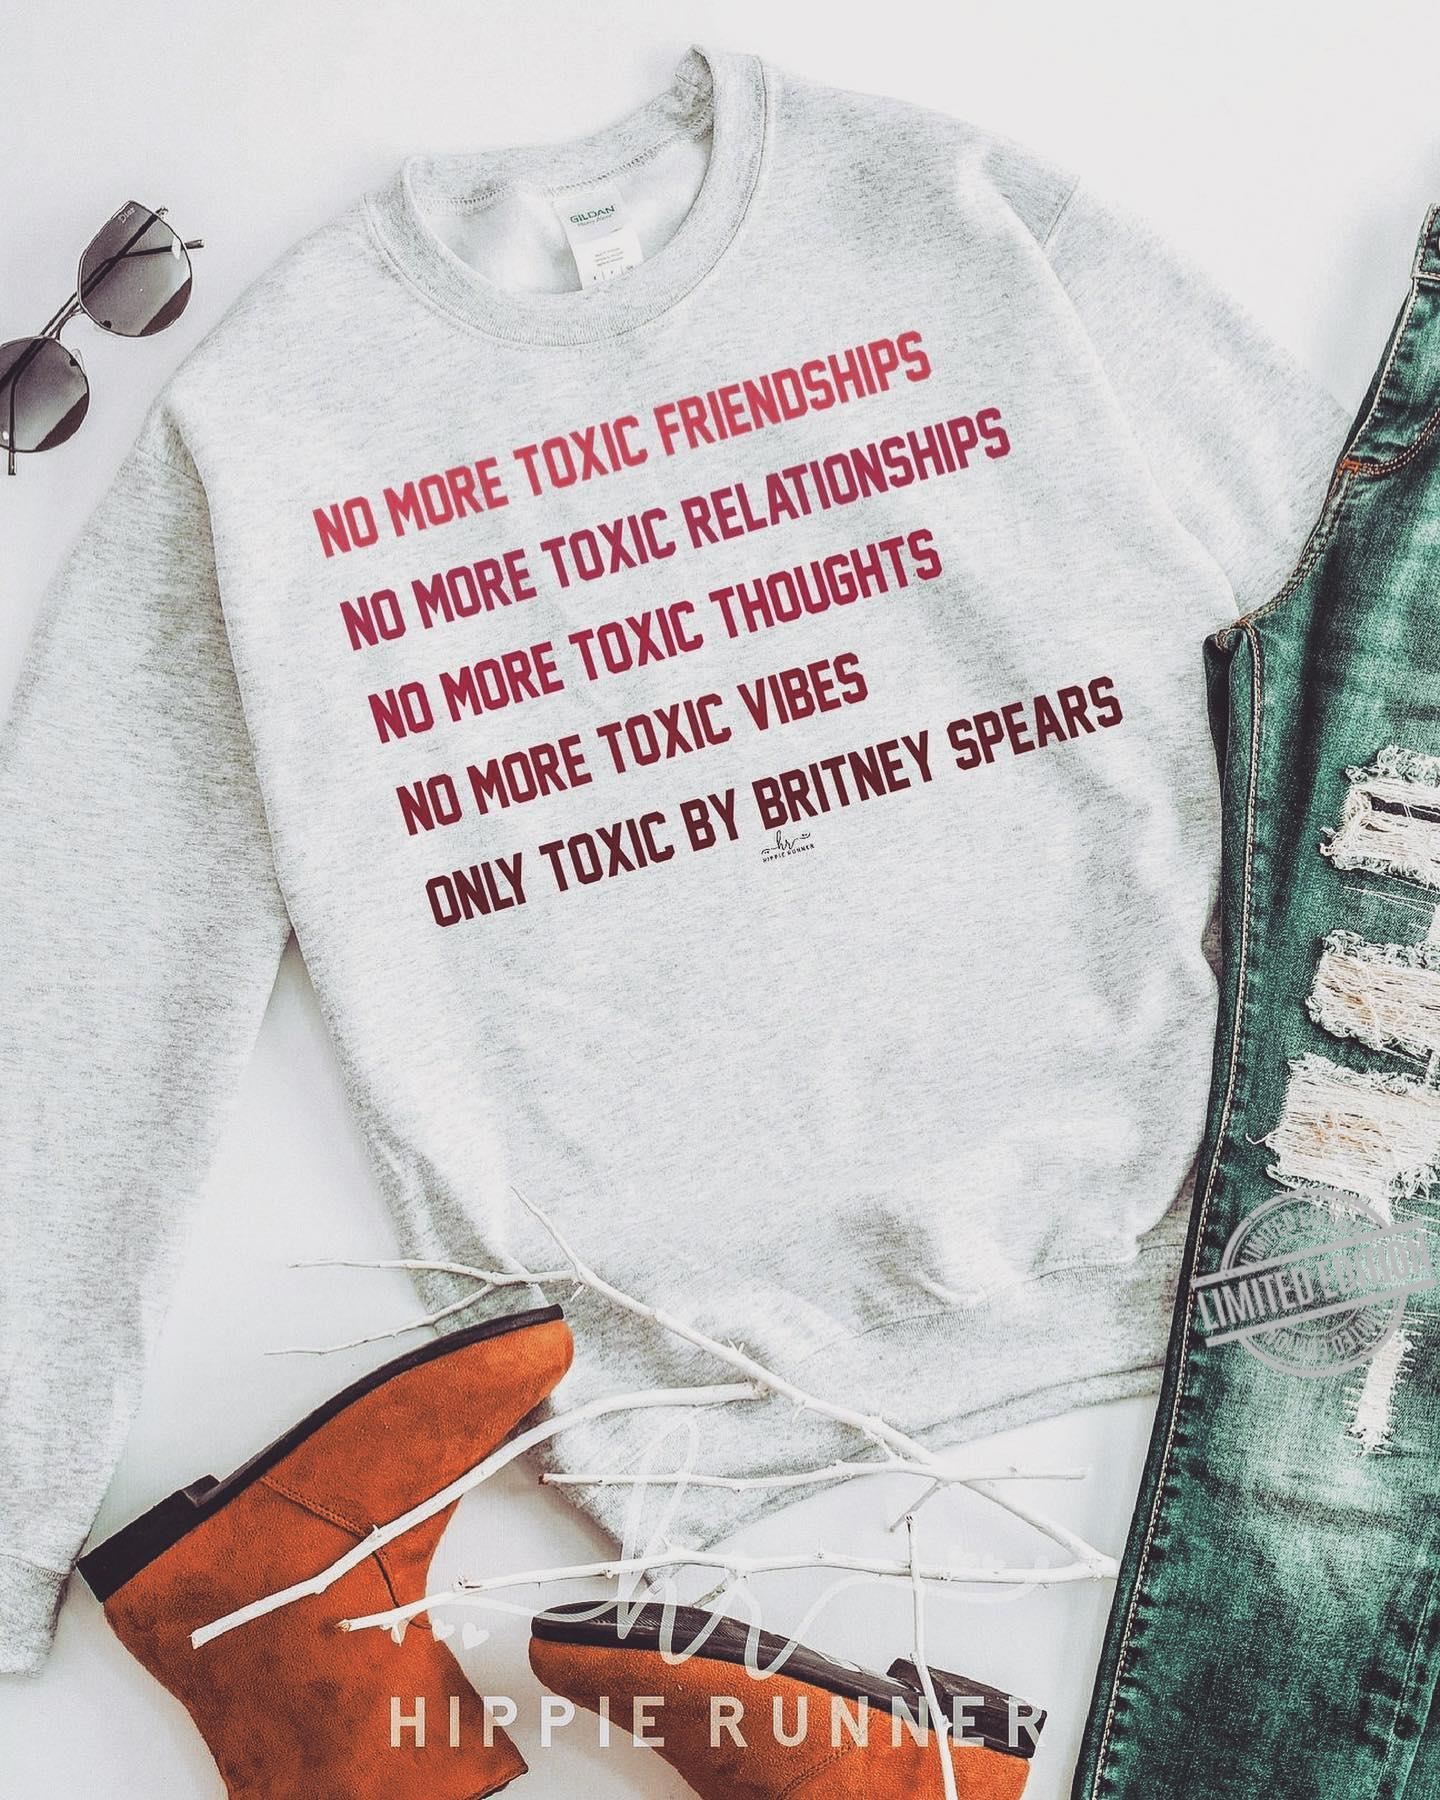 No More Toxic Friendships No More Toxic Relationships No More Toxic Thoughts No More Toxic Vibes Only Toxic By Britney Spears Shirt